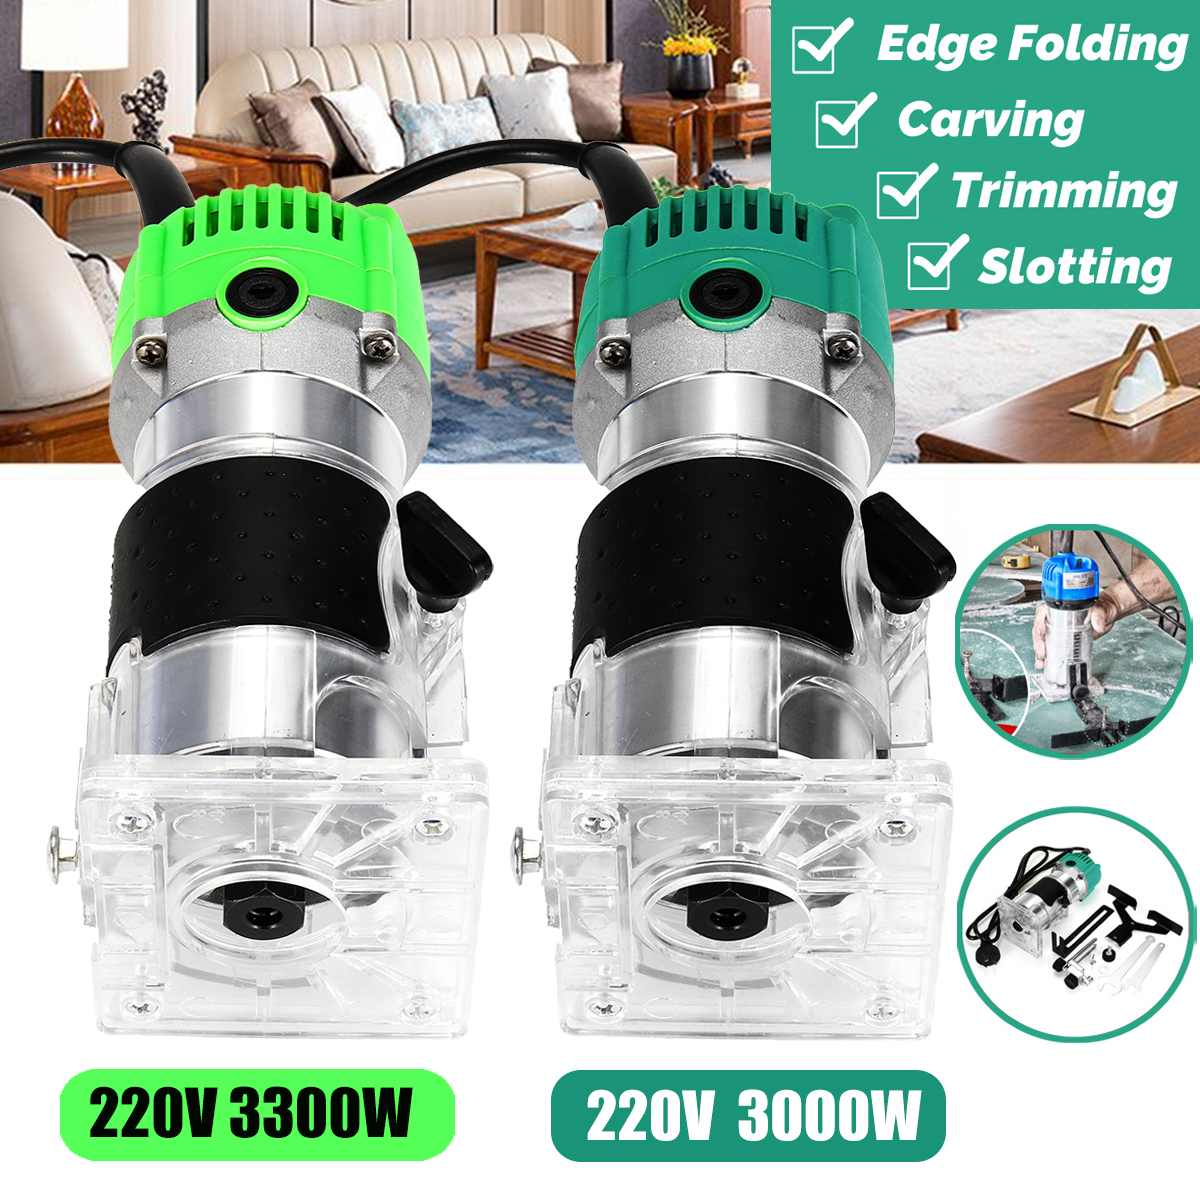 3000W Woodworking Electric Hand Trimmer with Adjustable Cutting Depth for surface finishing/Curve cutting